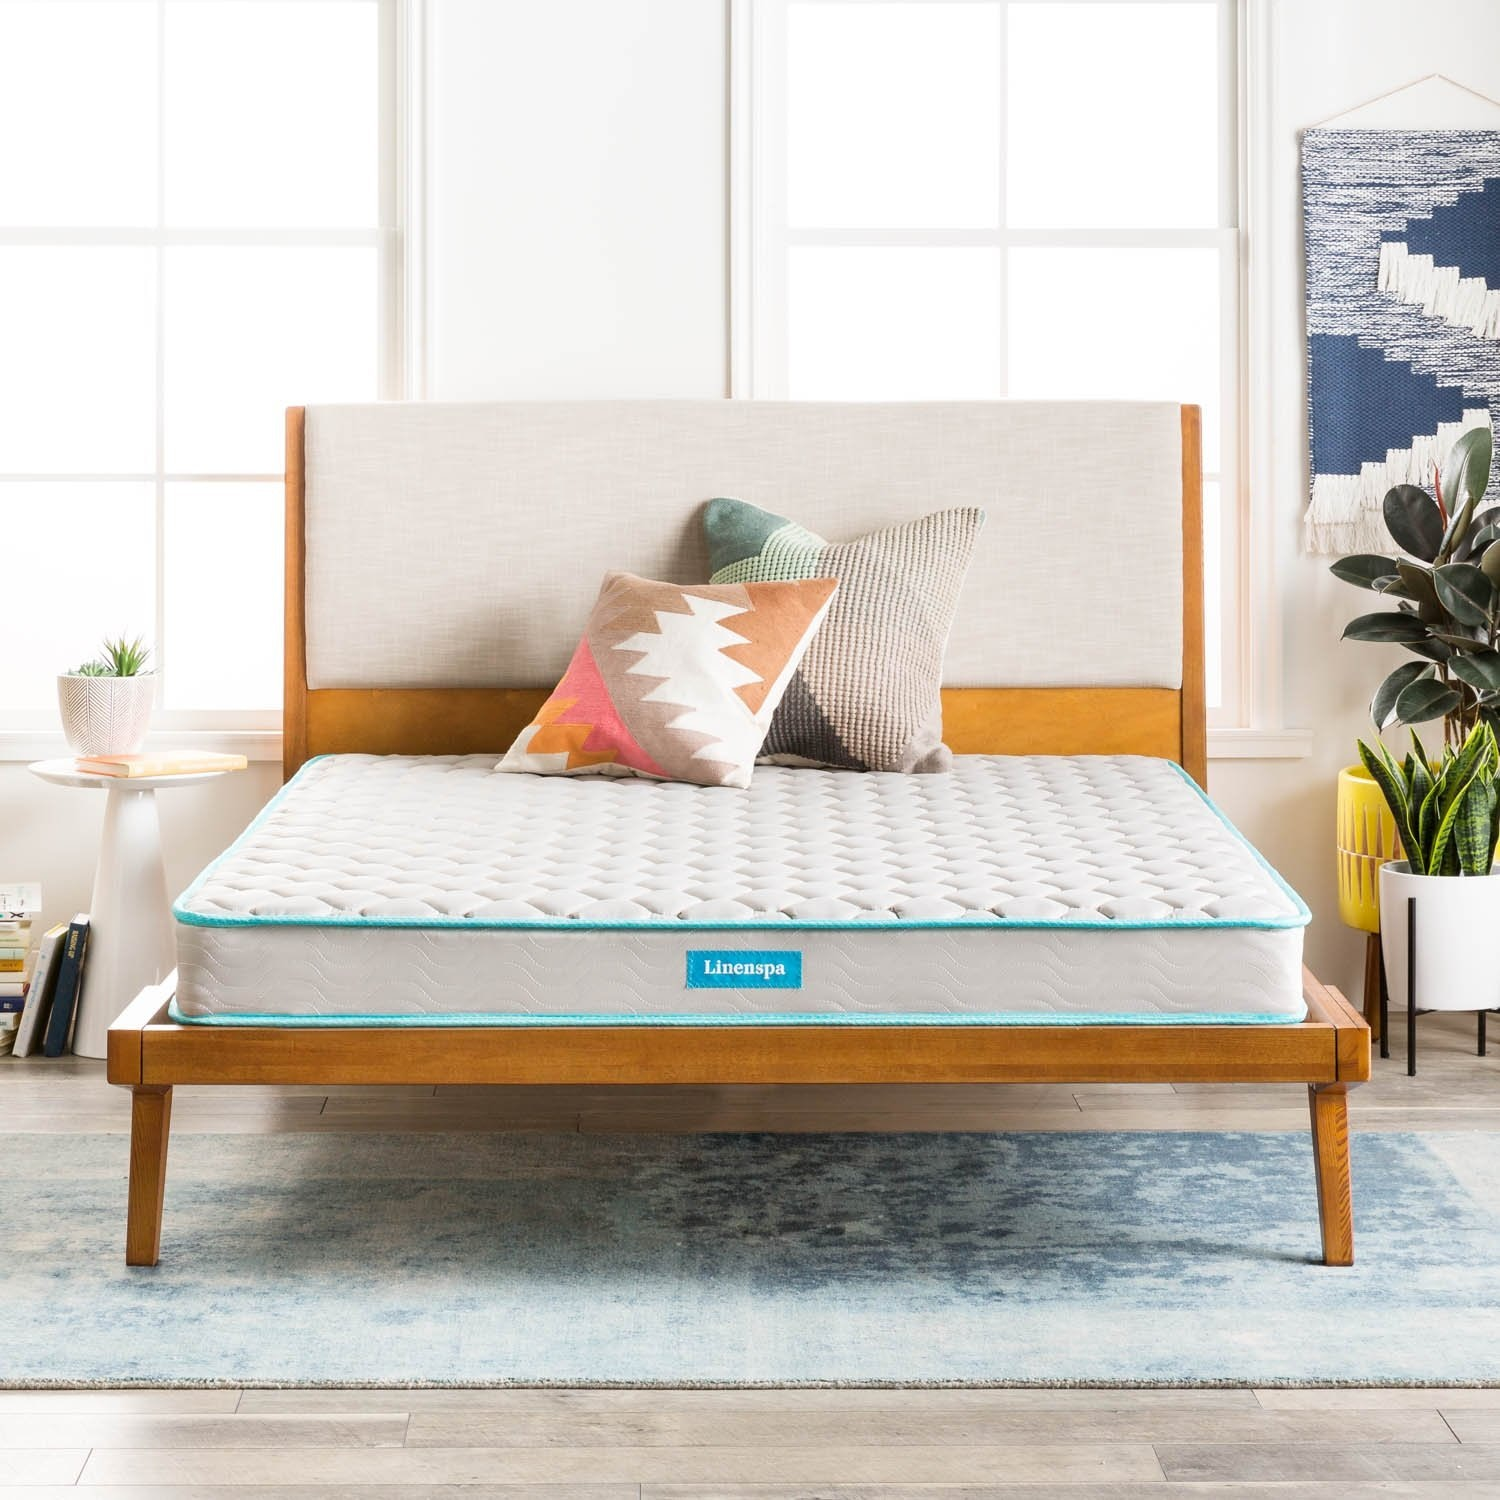 This $100 mattress for your guest room